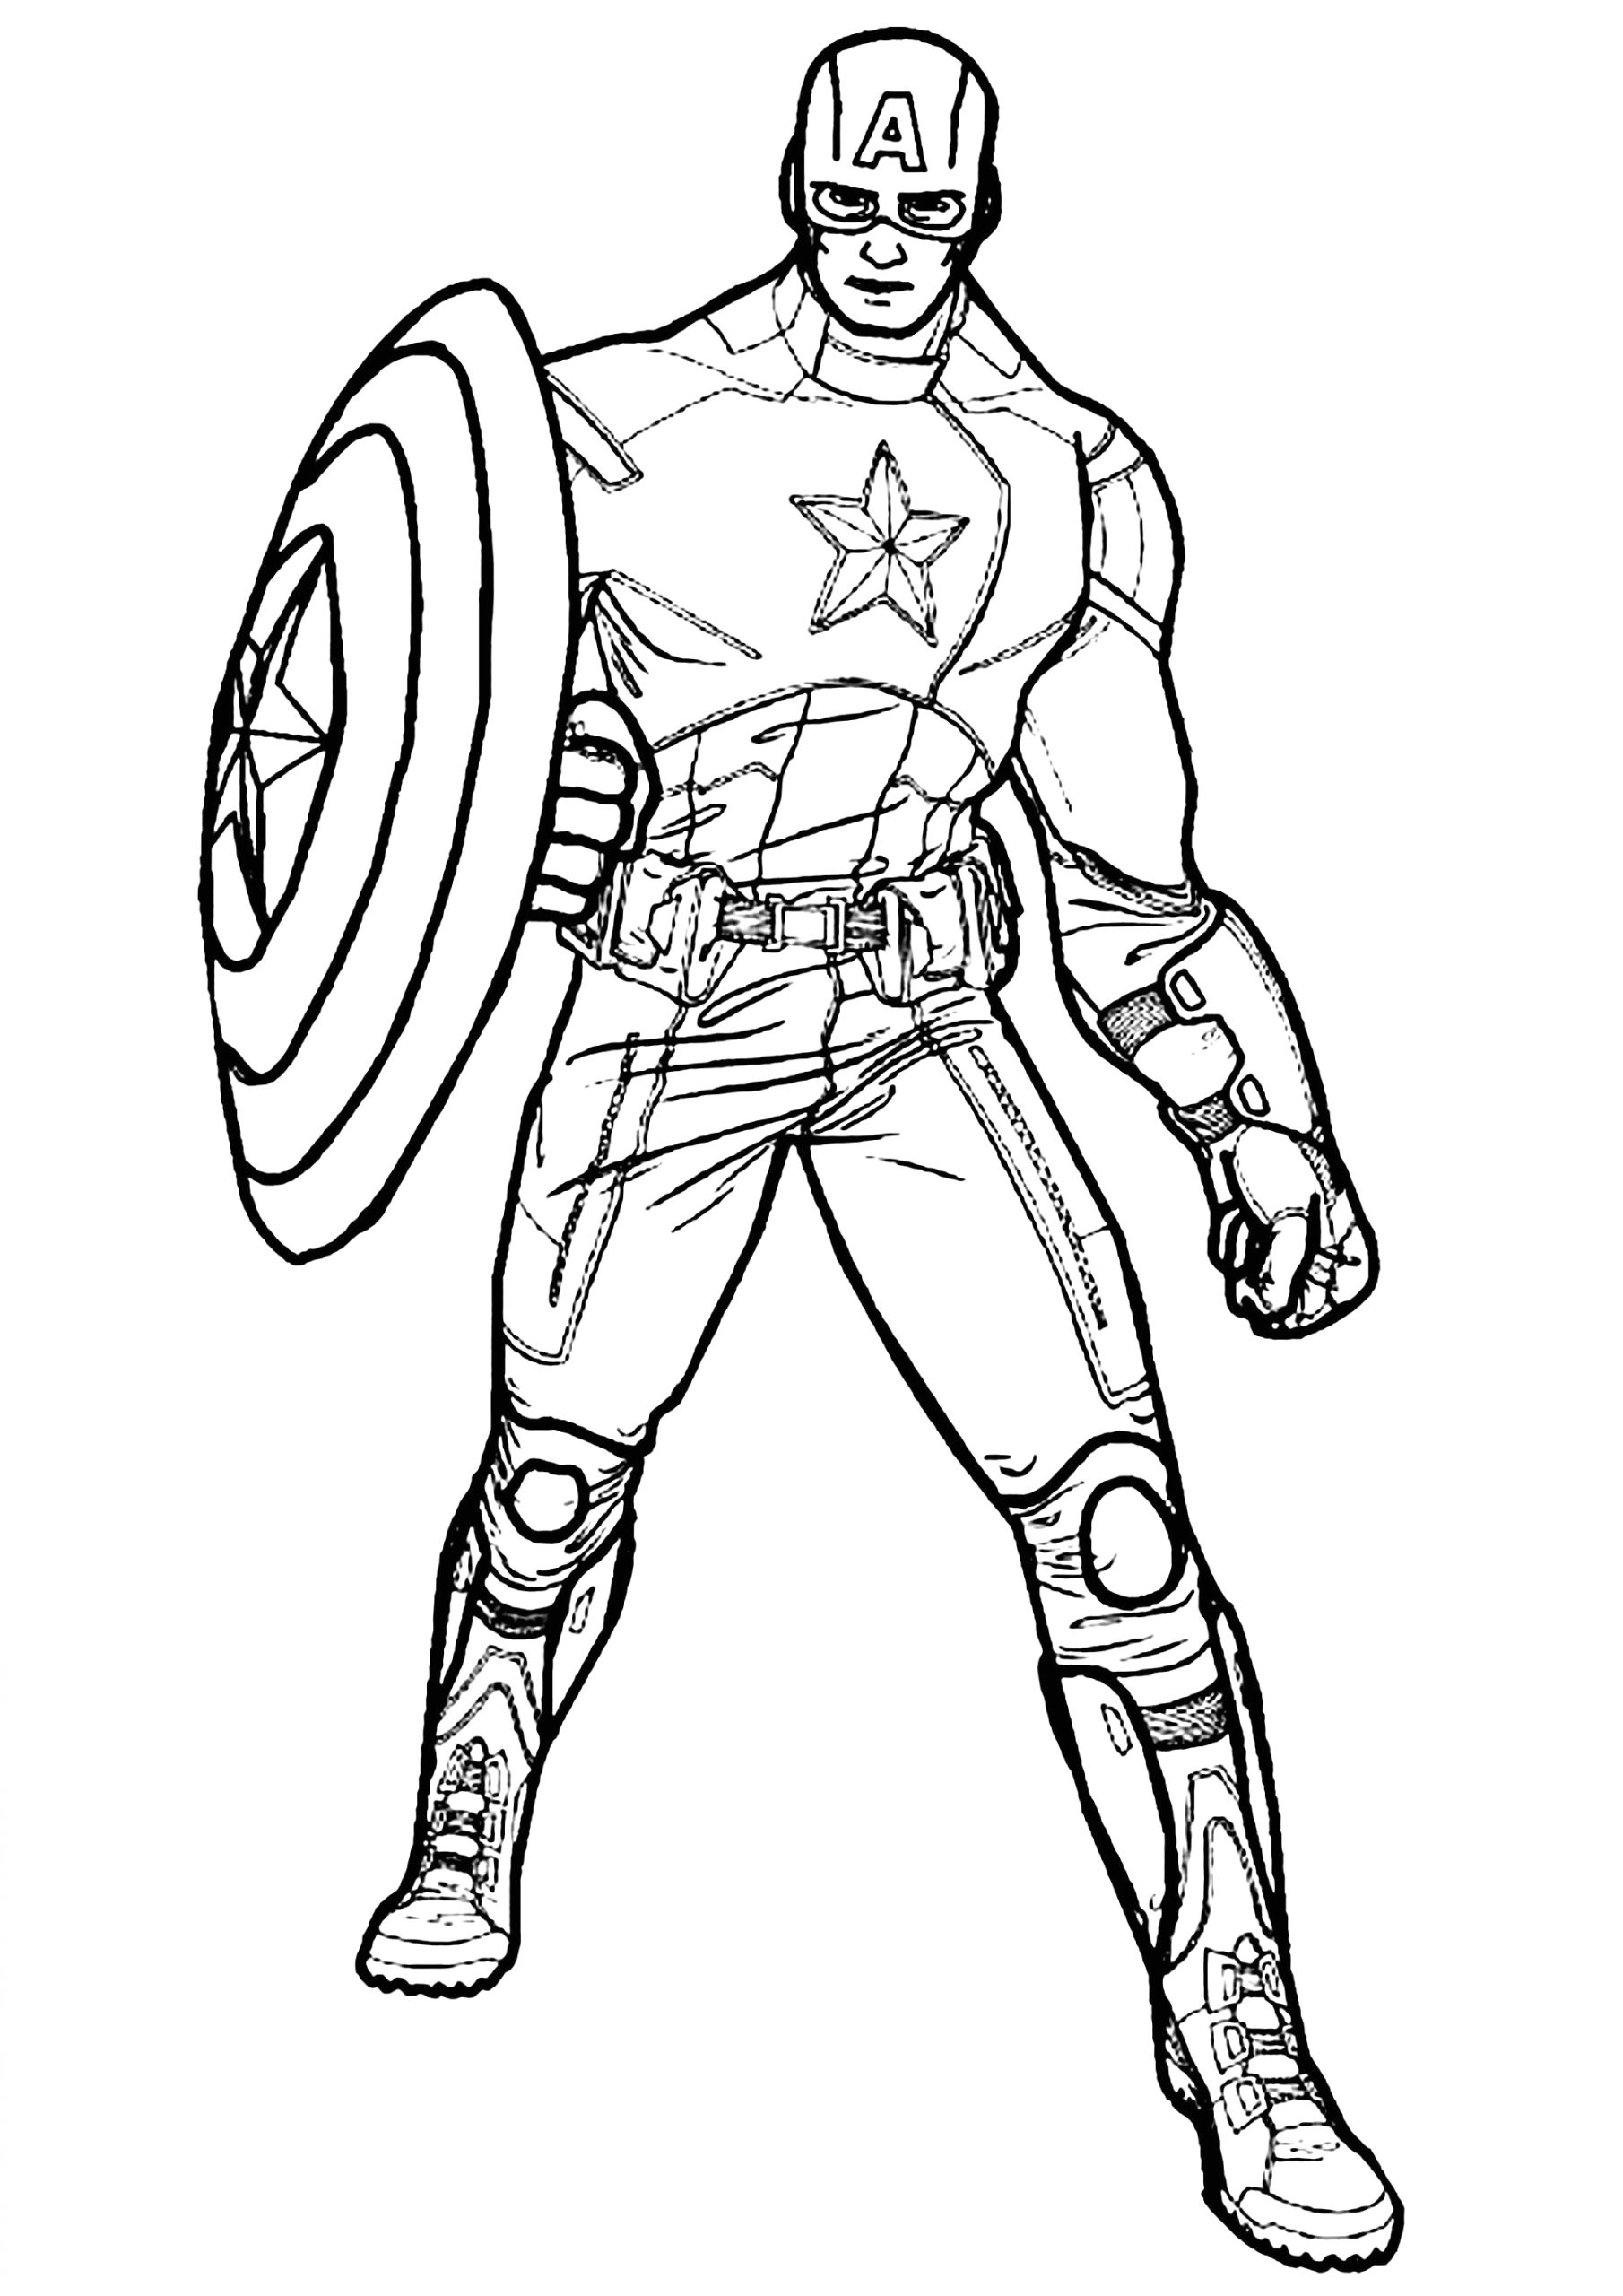 Captain America Coloring Pages Free to Print Captain America Captain America Kids Coloring Pages